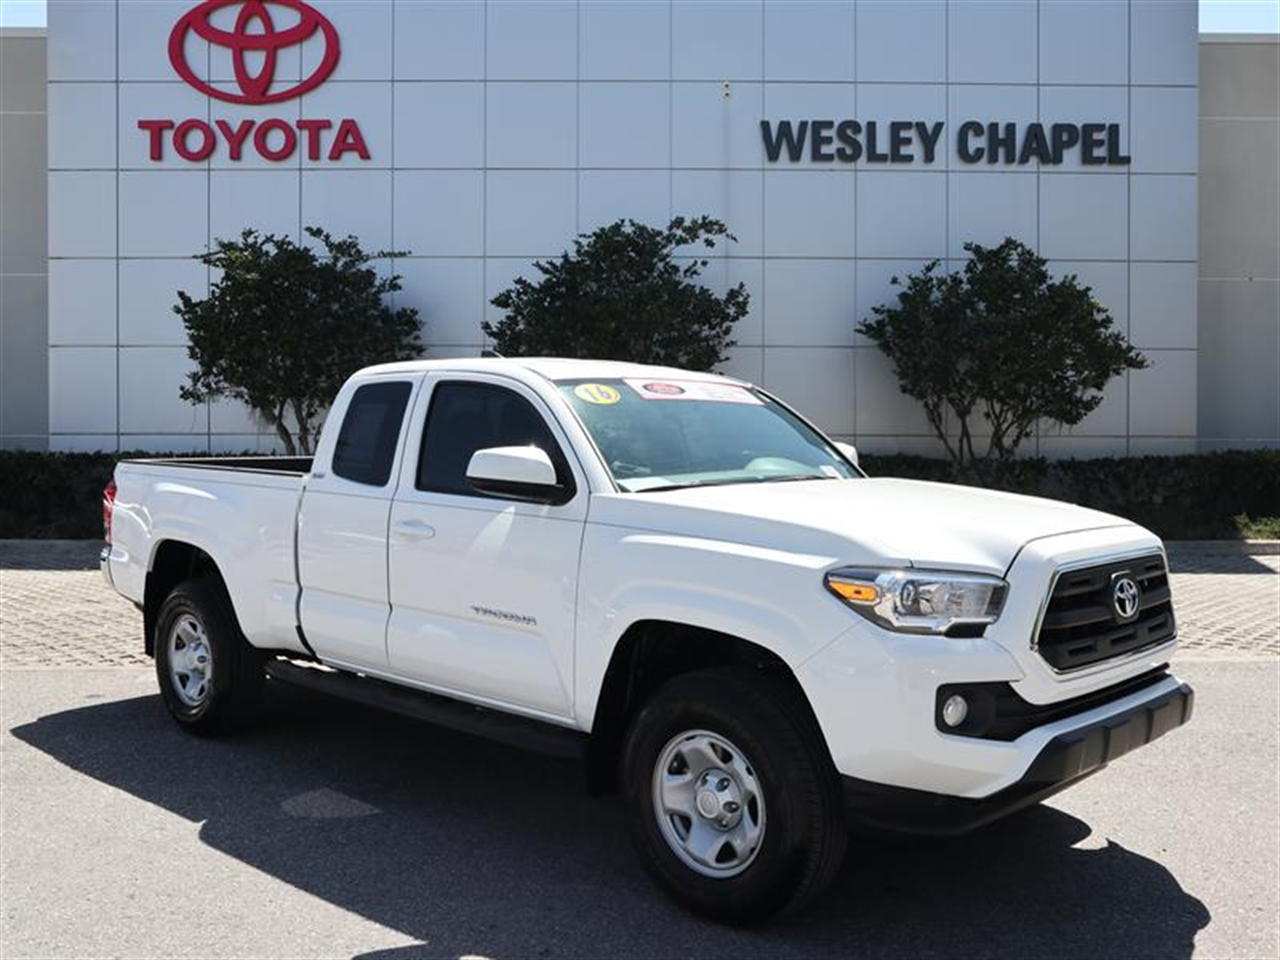 2016 TOYOTA TACOMA 2WD Access Cab V6 AT SR5 0 miles 2 12V DC Power Outlets 4 Person Seating Cap